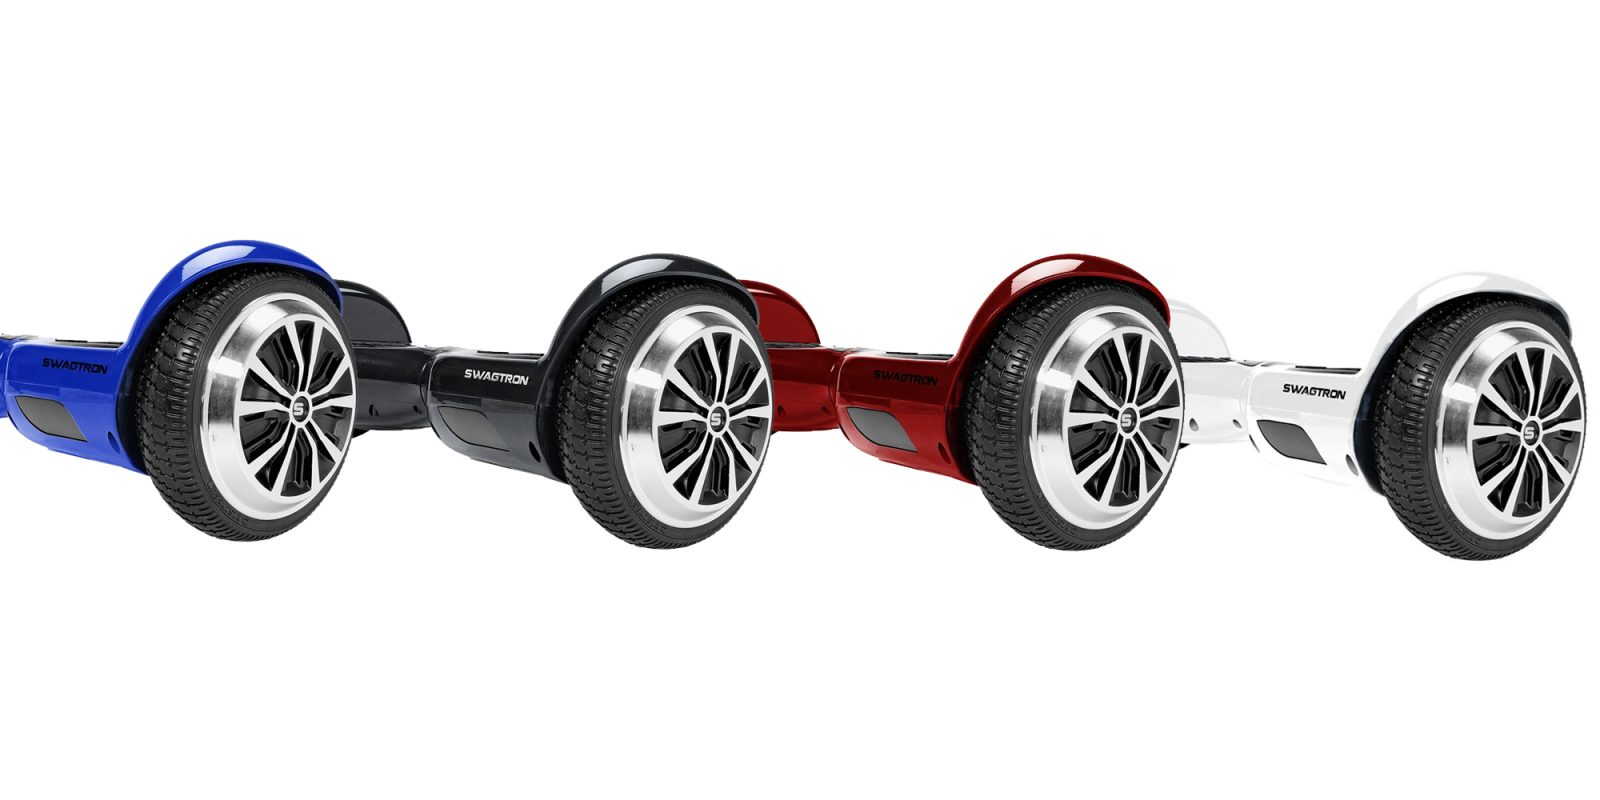 Keep calm and cruise on: Swagtron's T1 Hoverboard is selling